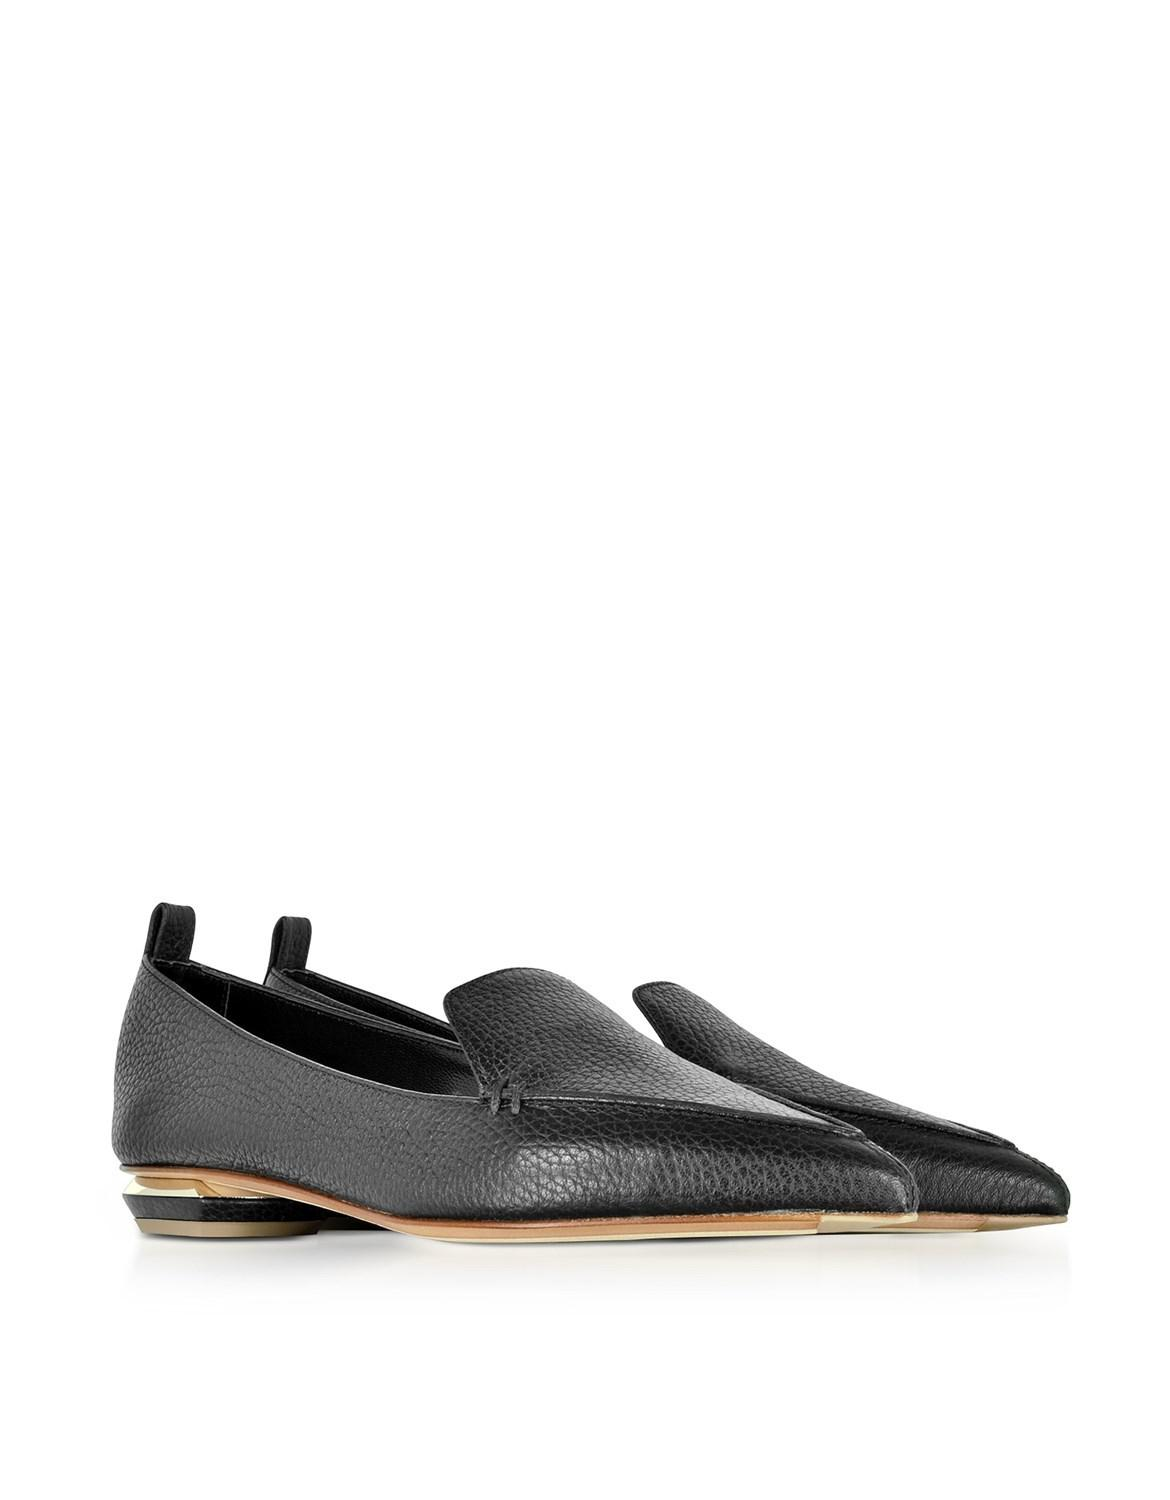 Nicholas Kirkwood Shoes, Beya Burgundy Tumbled Leather Loafers